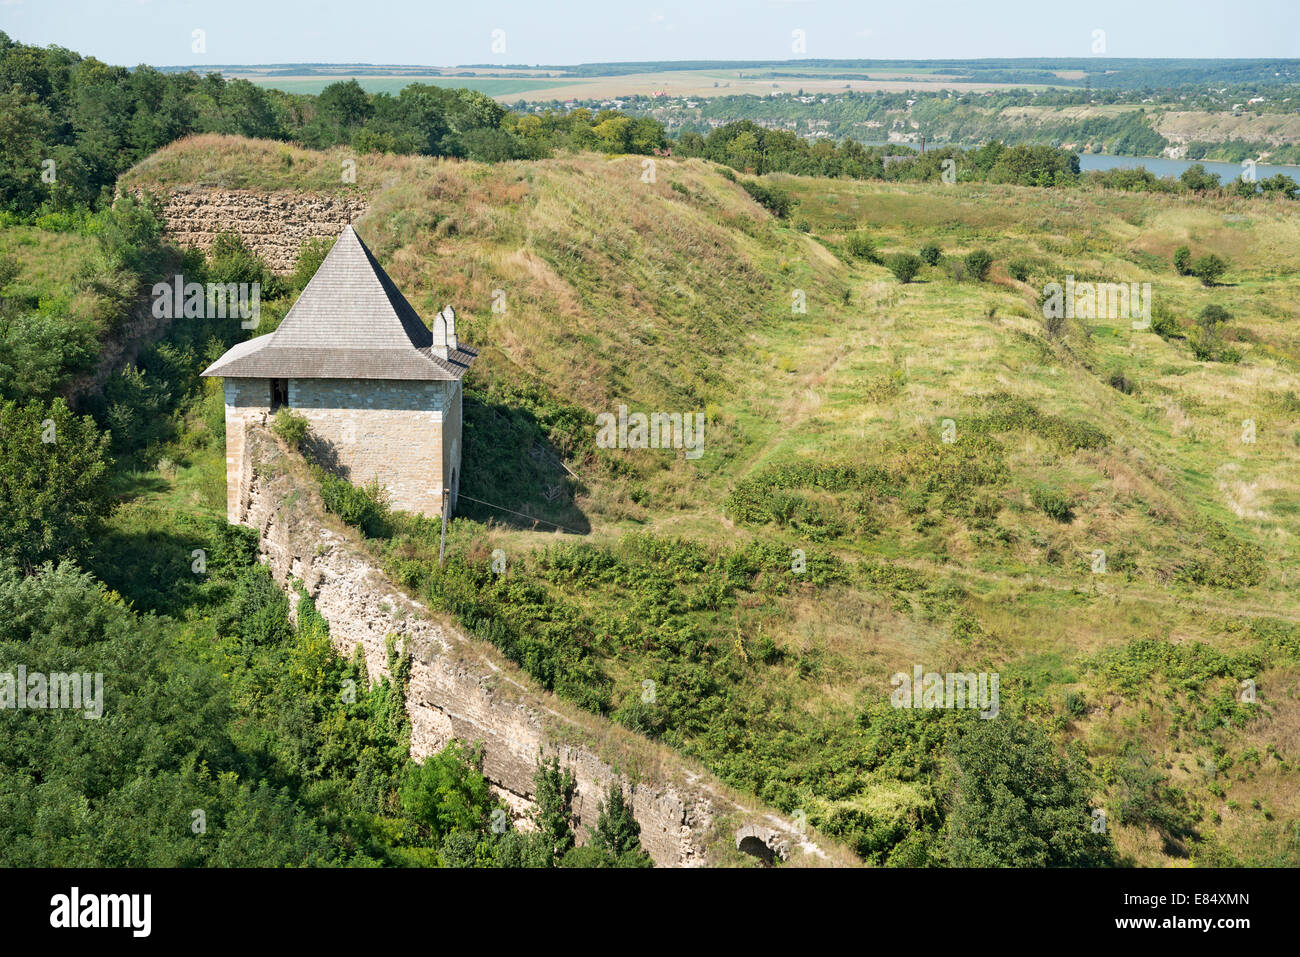 Khotyn fortress: Yaski Gate, Western bastion and wall - Stock Image